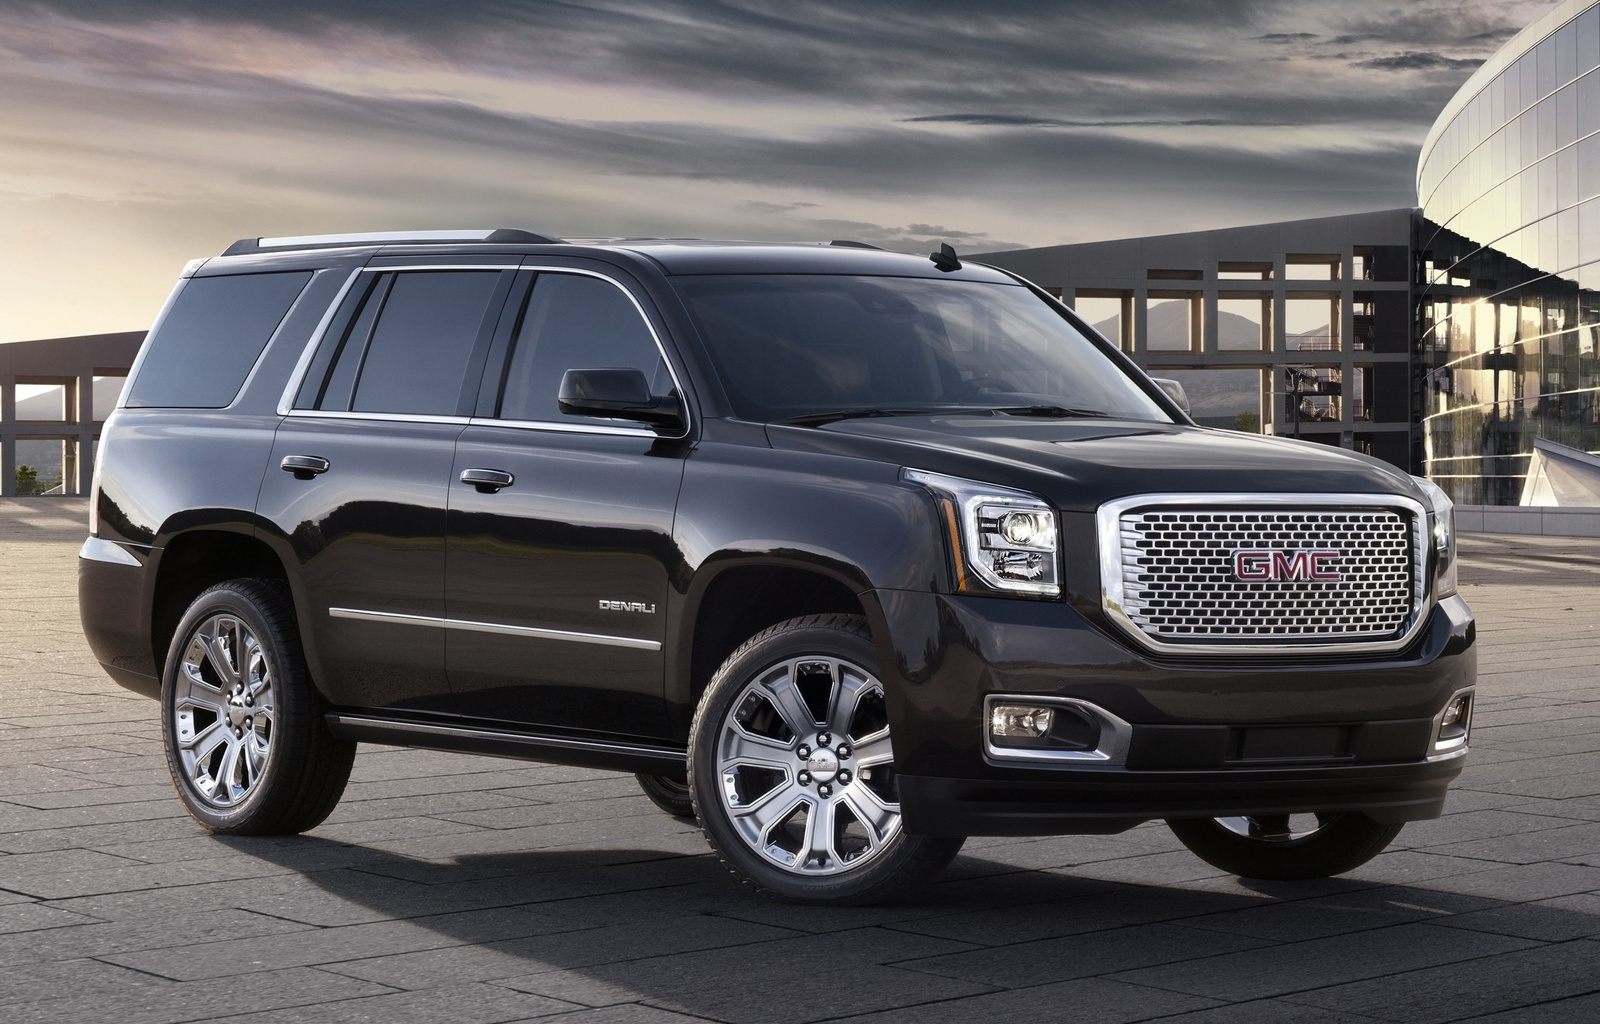 2014 Gmc Sierra Denali Review And Price | Apps Directories